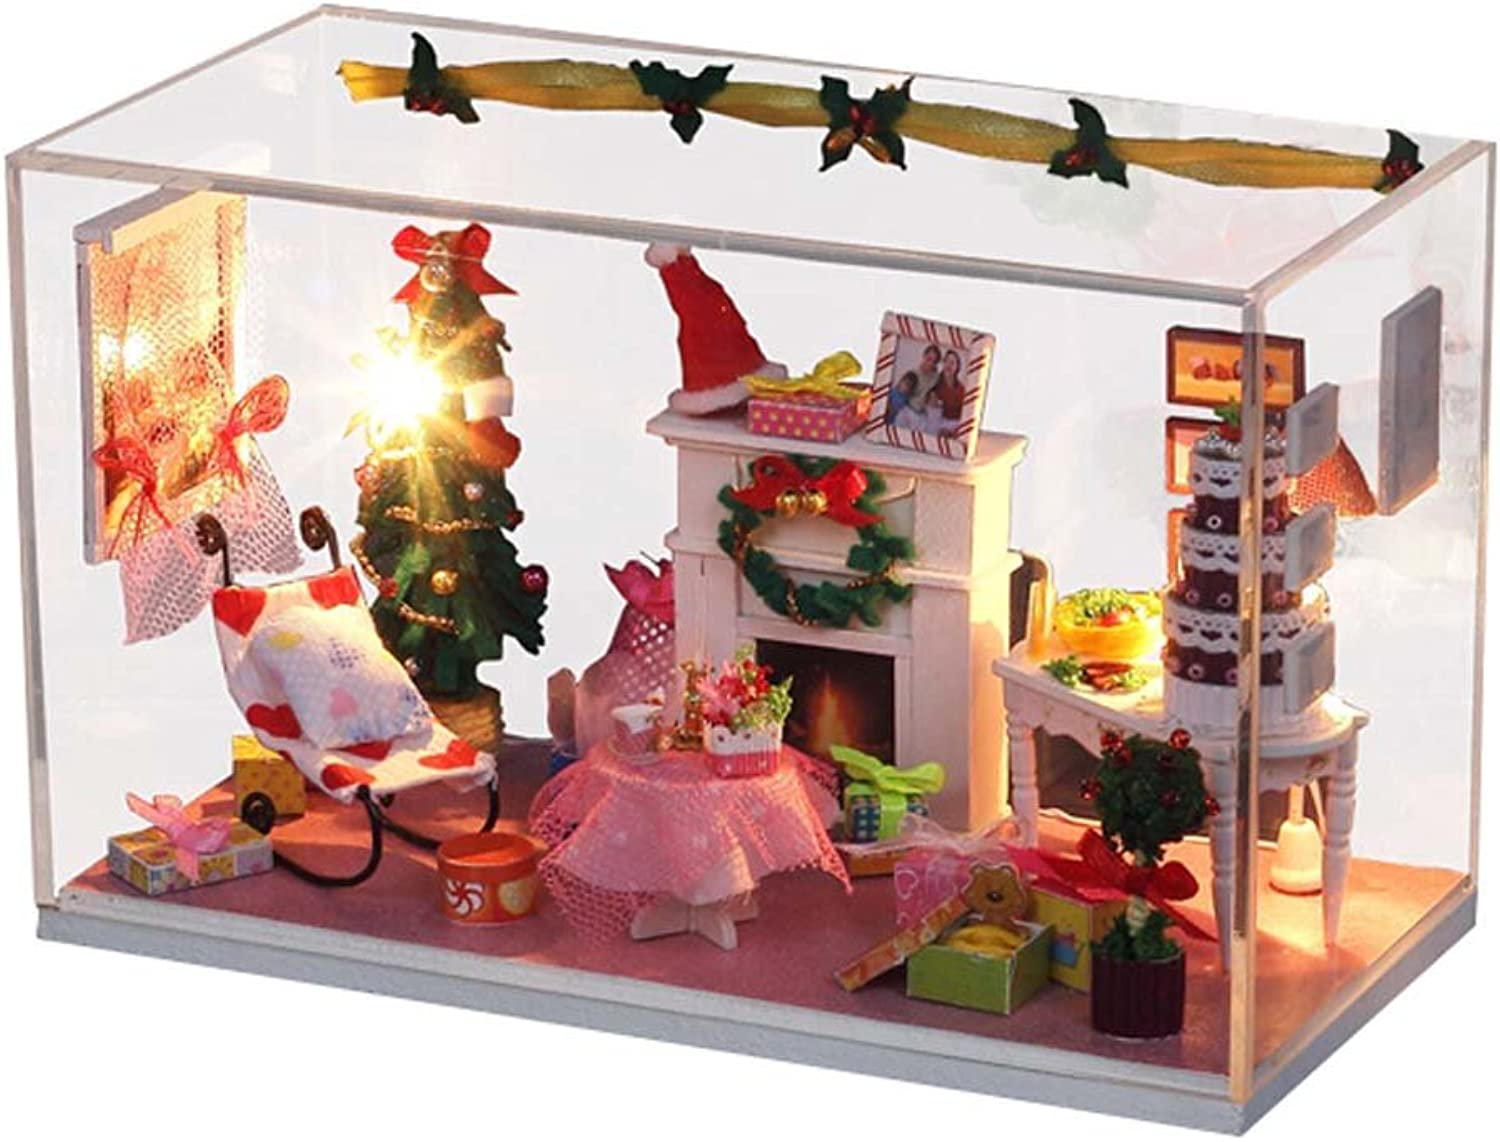 Diy Cute Buildings 3D Puzzle Model Toy Hand-made Toy(Merry Christmas)